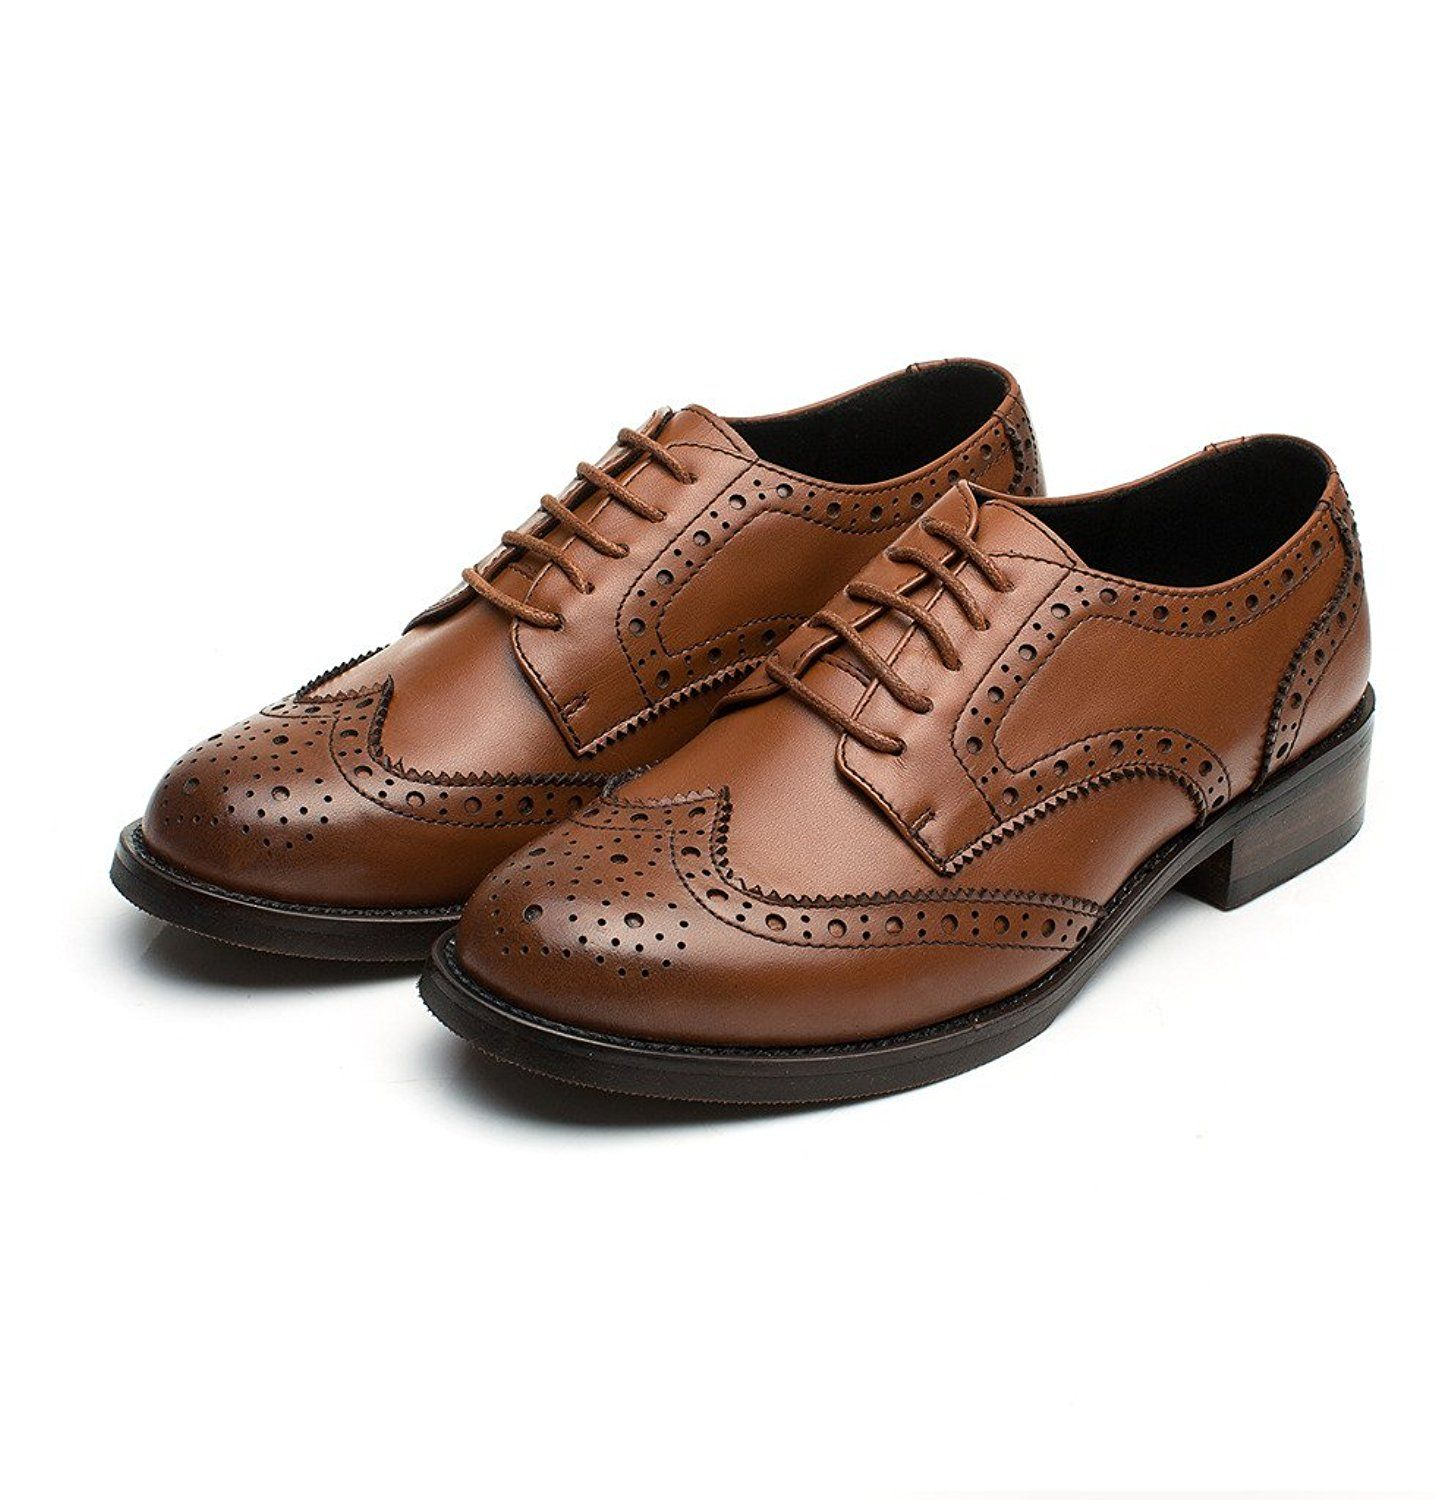 a7cb04021ec7e Amazon.com | U-lite Brown Perforated Lace-up Wingtip Leather Flat ...